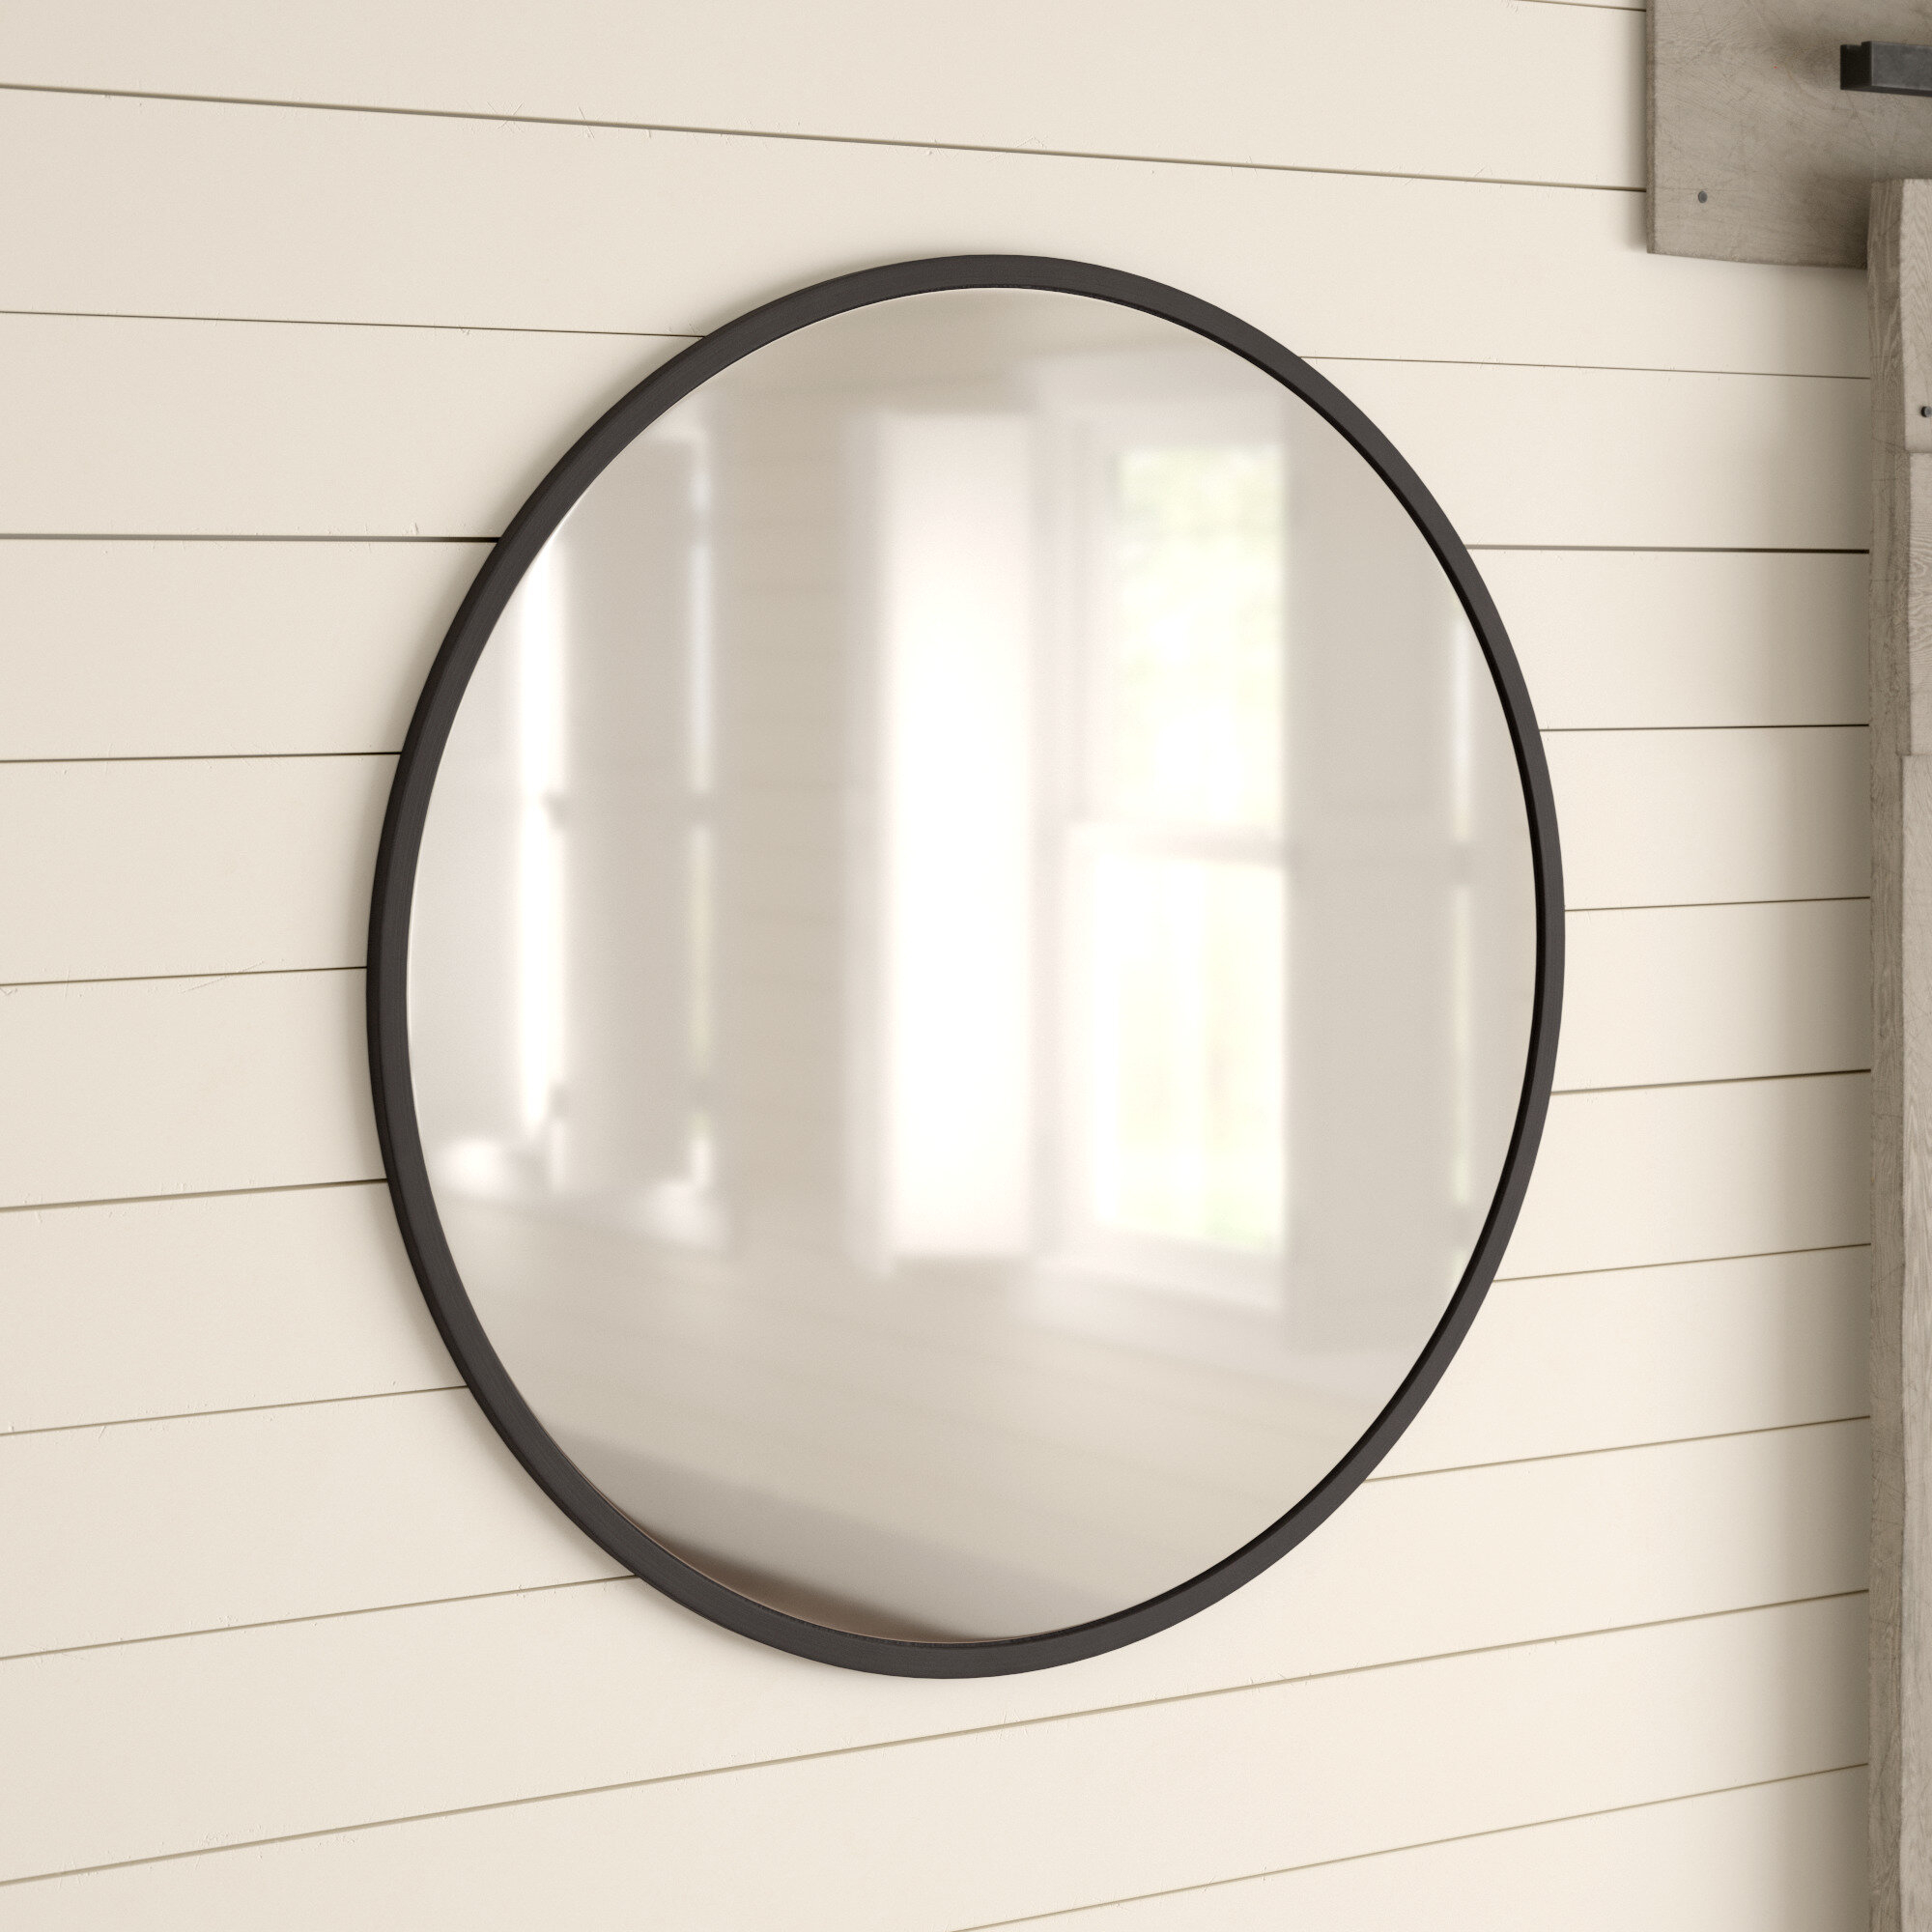 Umbra Hub Modern And Contemporary Accent Mirror Throughout Guidinha Modern & Contemporary Accent Mirrors (View 29 of 30)